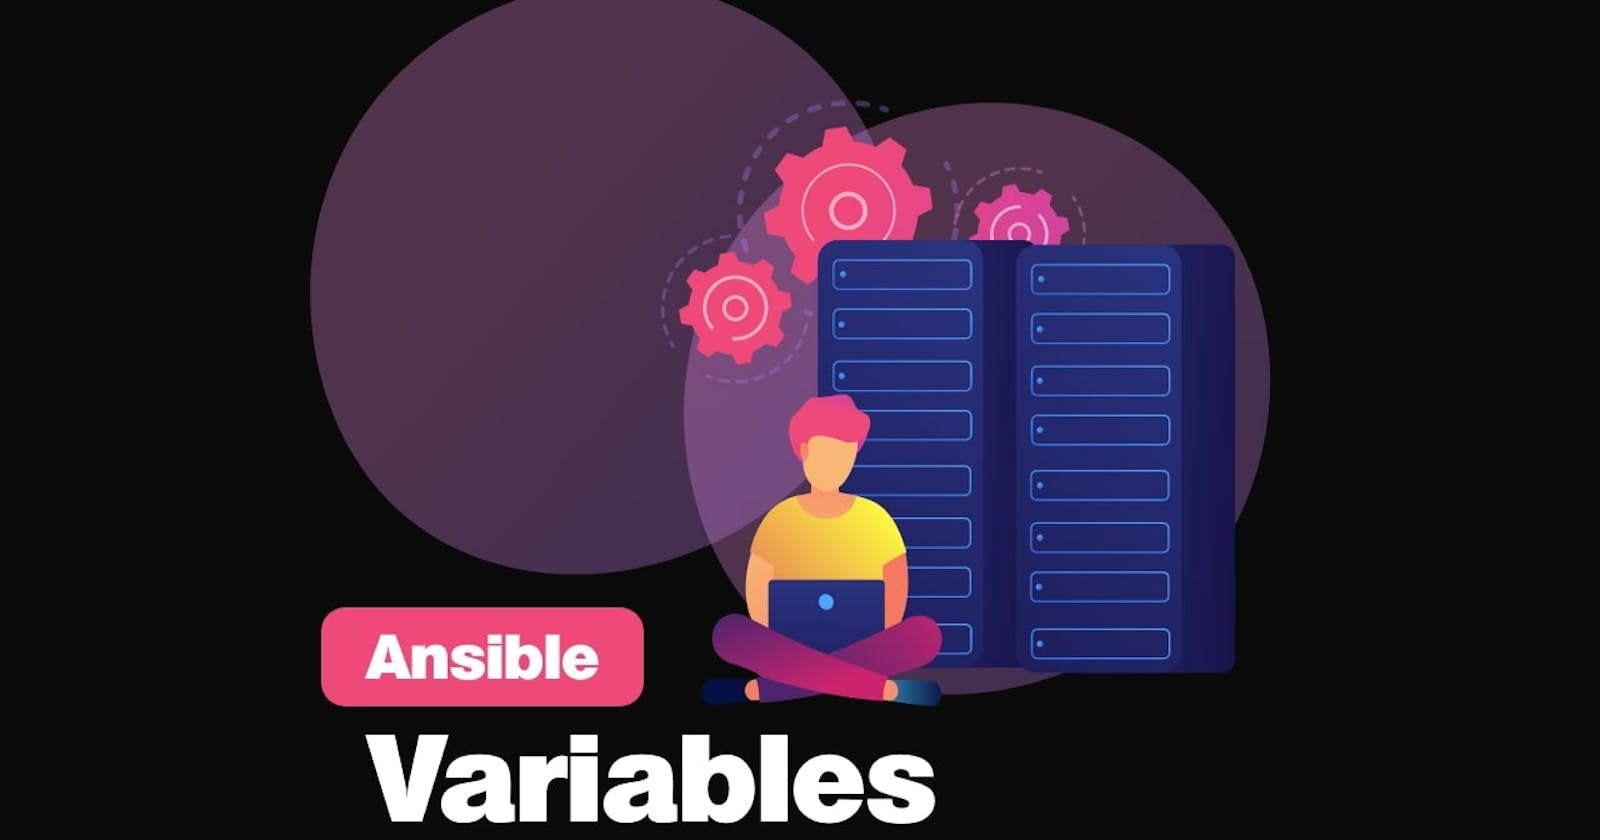 Everything about Ansible Variables